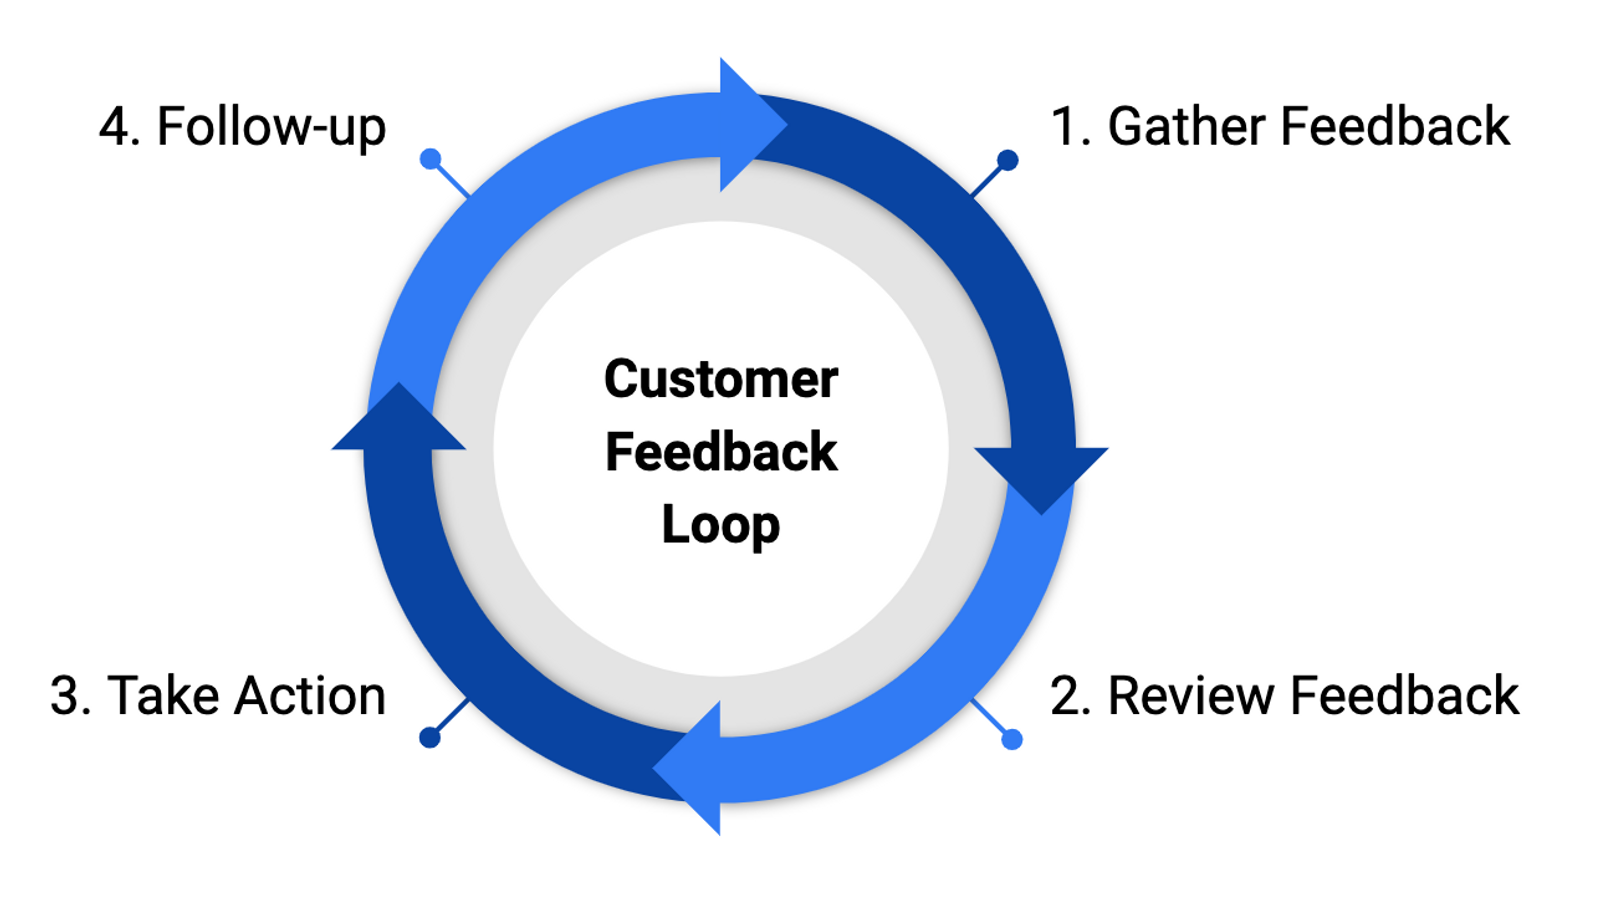 Cover Image for Customer feedback loop - what it is and why it's important